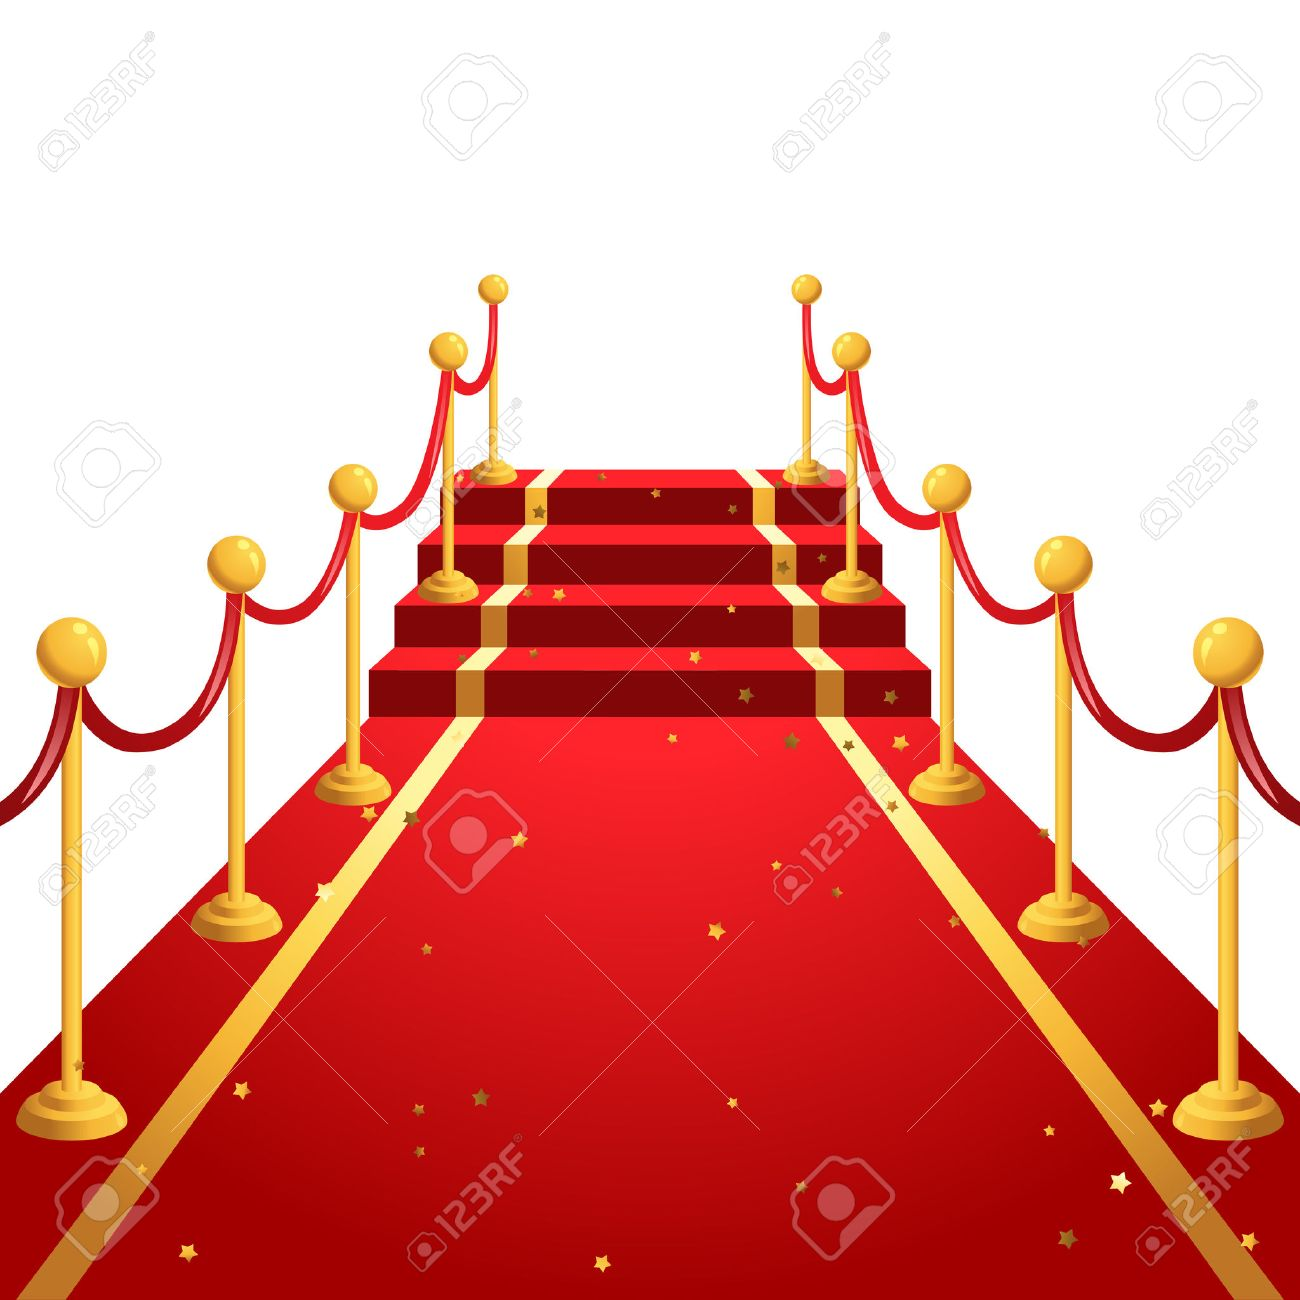 Red Carpet Picture Background Red Carpet Background on The